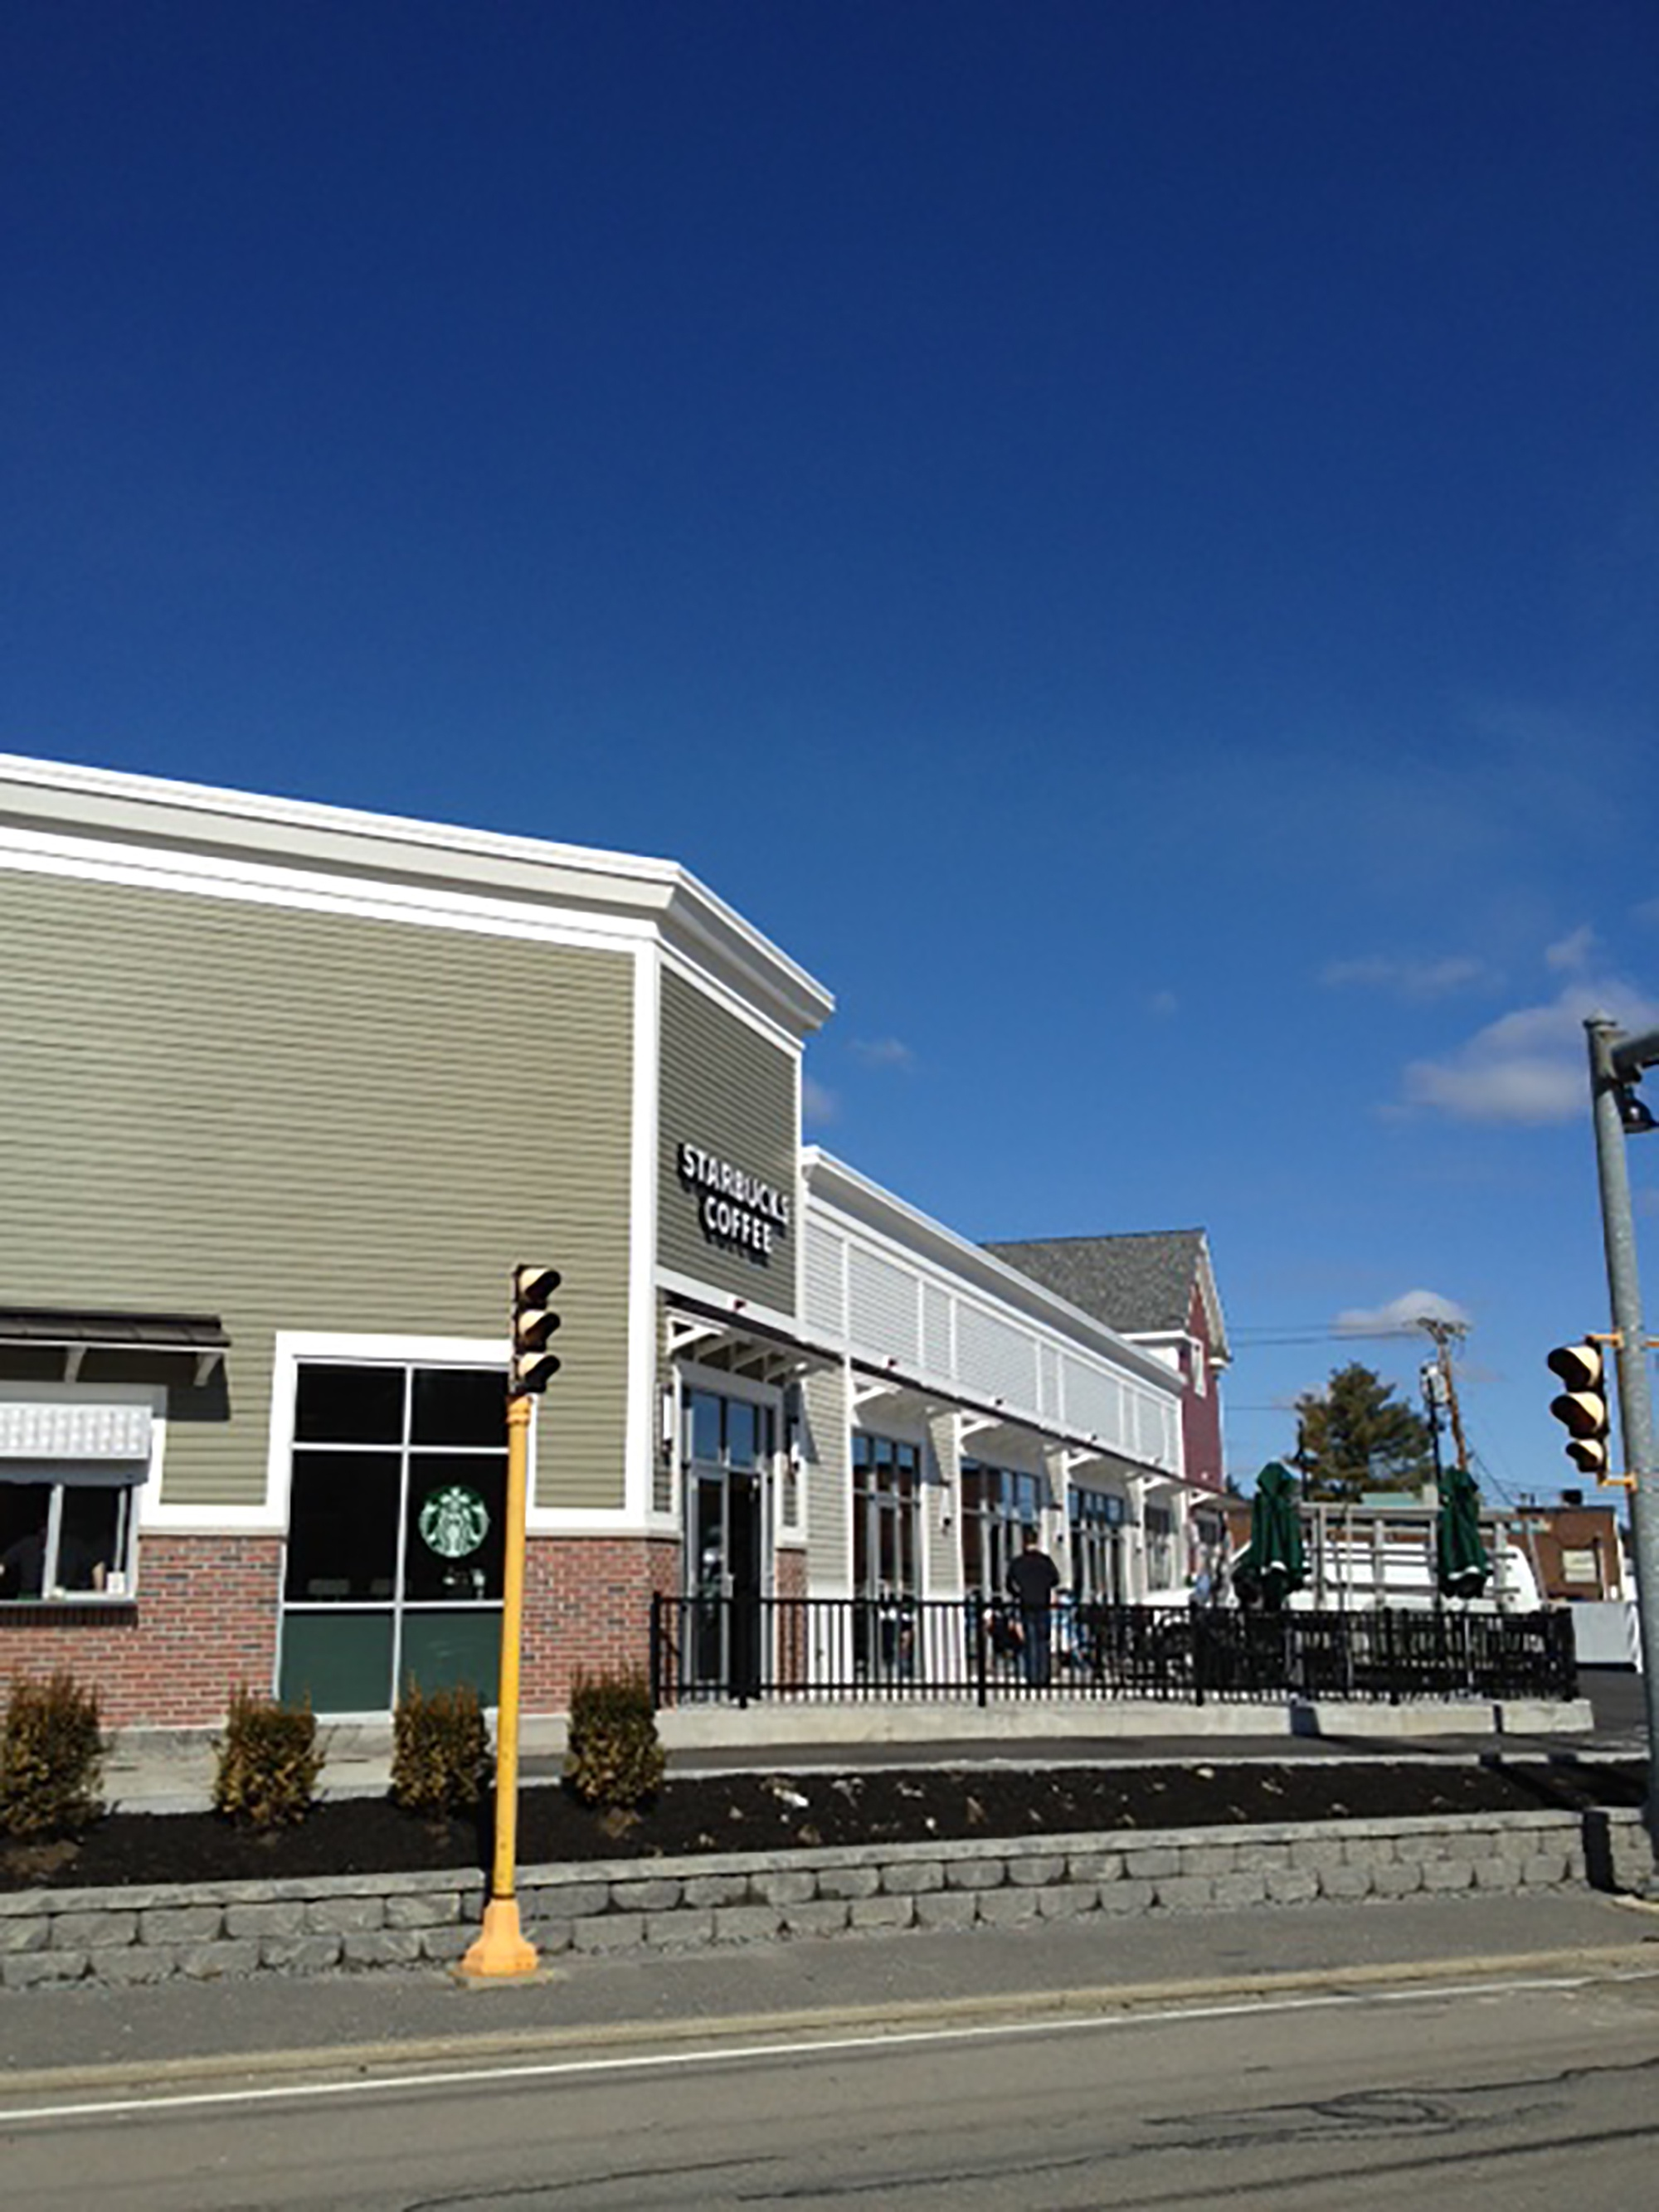 201-middlesex retail plaza